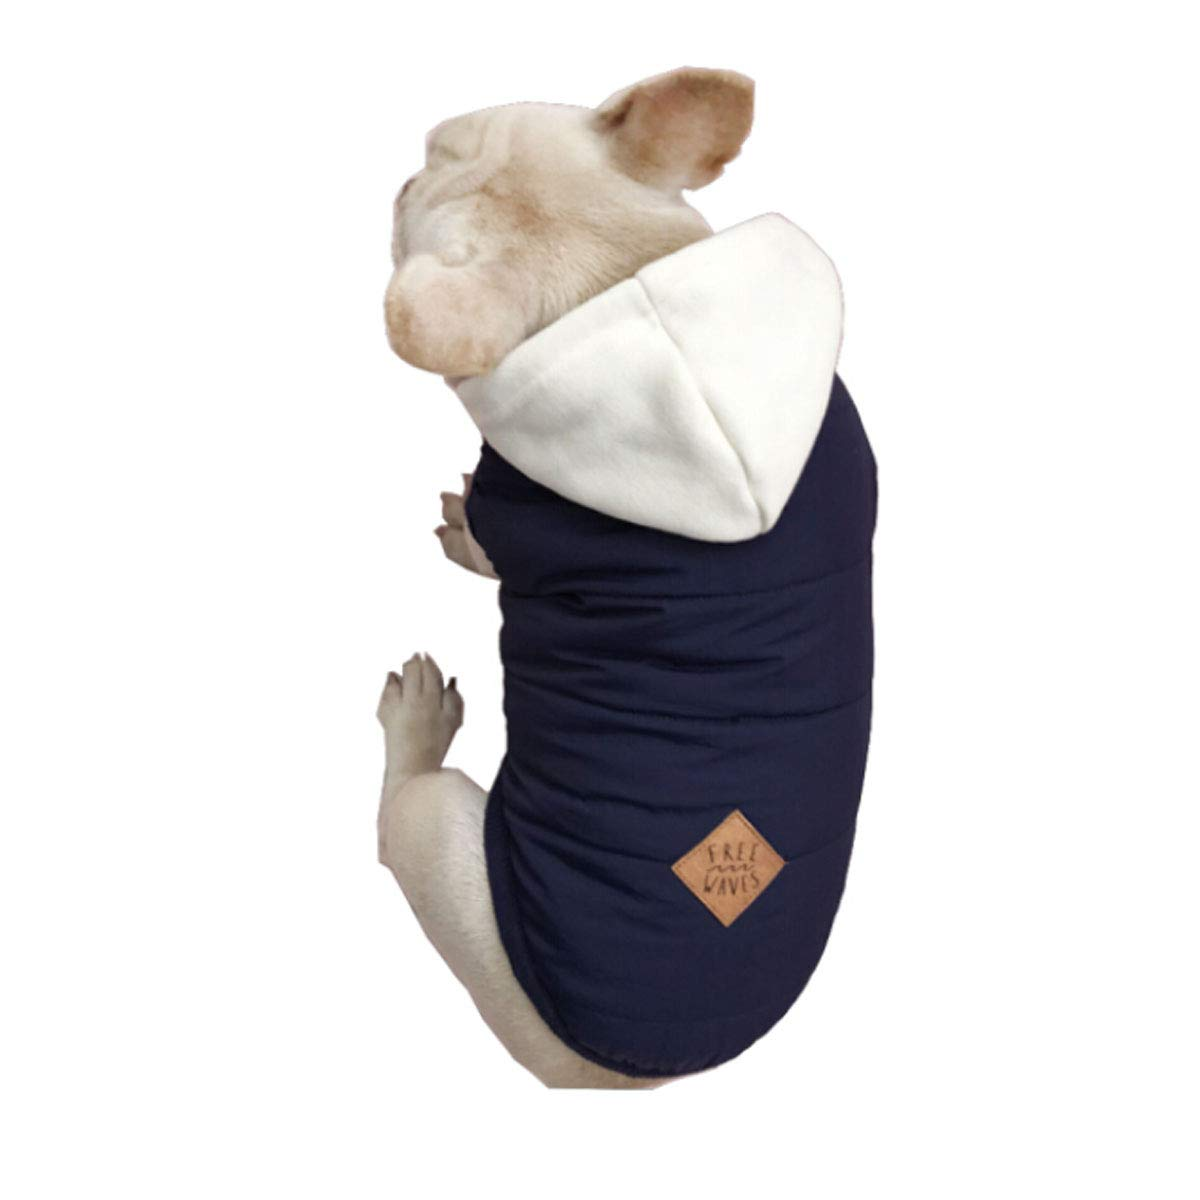 bluee XL bluee XL Huijunwenti Autumn and Winter New, Pet Clothes, Puppy Cotton Vest, Law Warm Clothing, Teddy Dog, Dog Cotton Vest, Tide Dark bluee S Fashion (color   bluee, Size   XL)